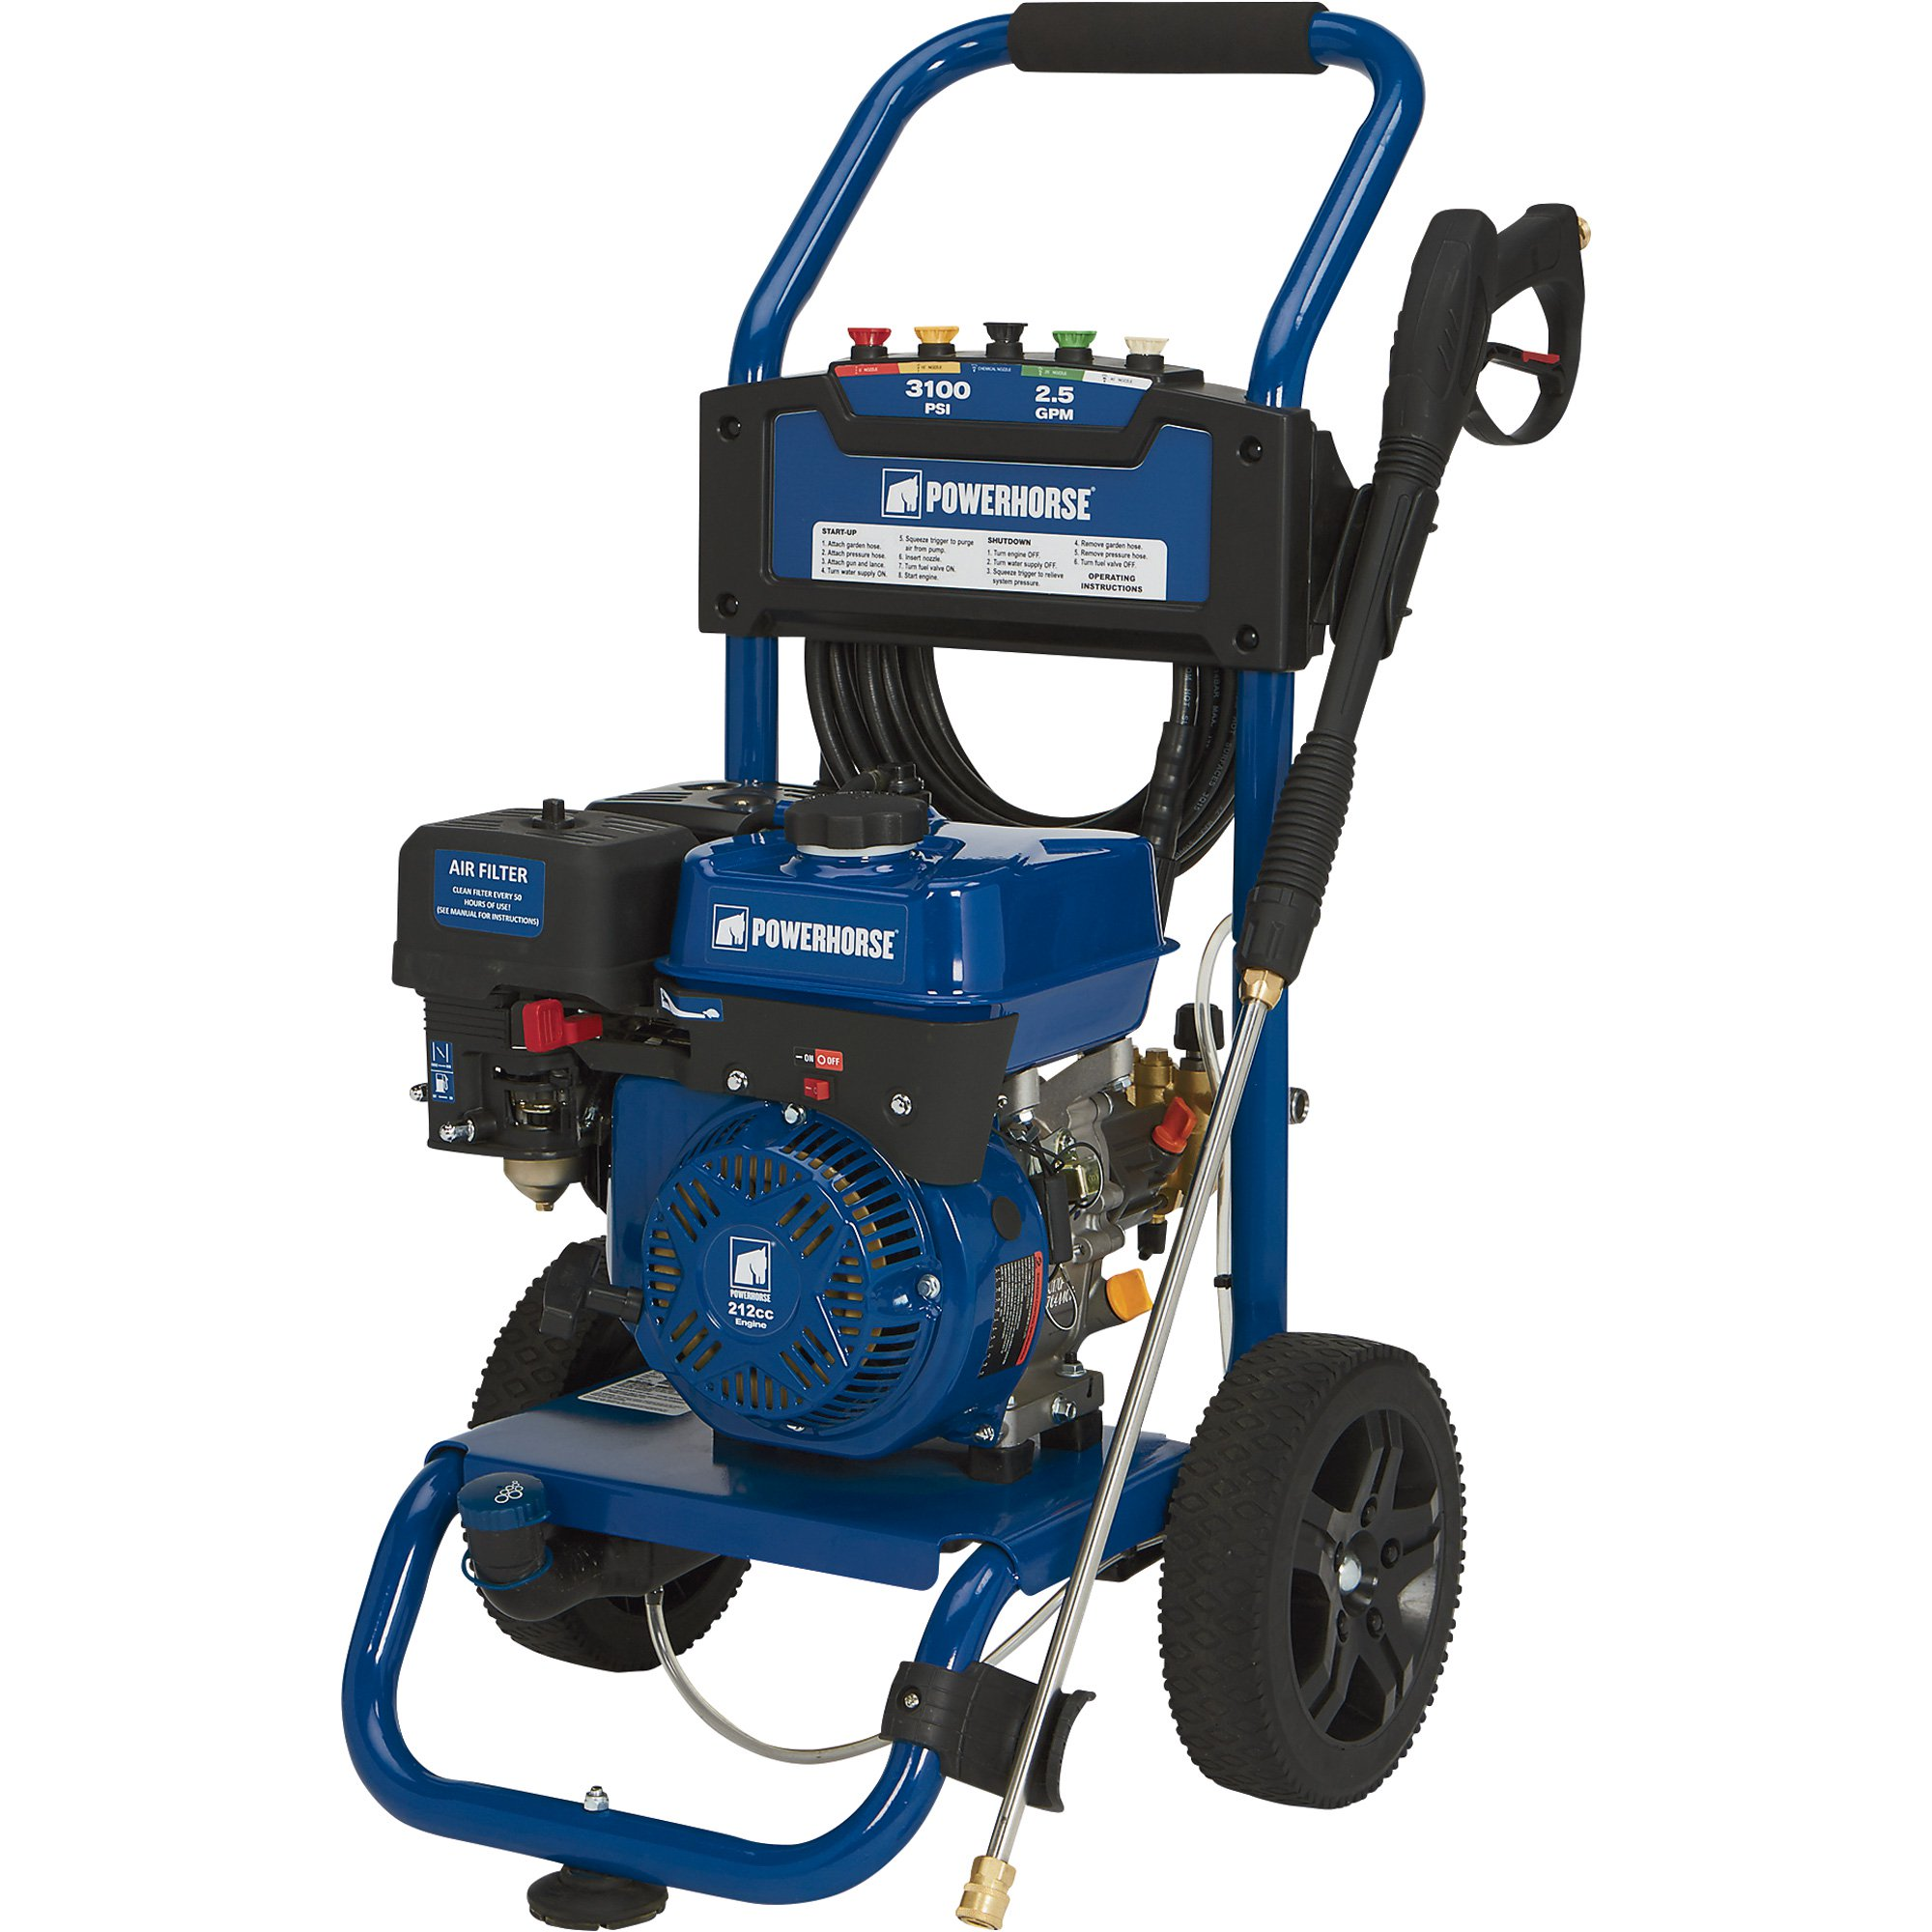 Powerhorse 750143 Gas Cold Water Pressure Washer - 3100 PSI, 2.5 GPM, EPA and CARB Compliant - FREE SHIPPING